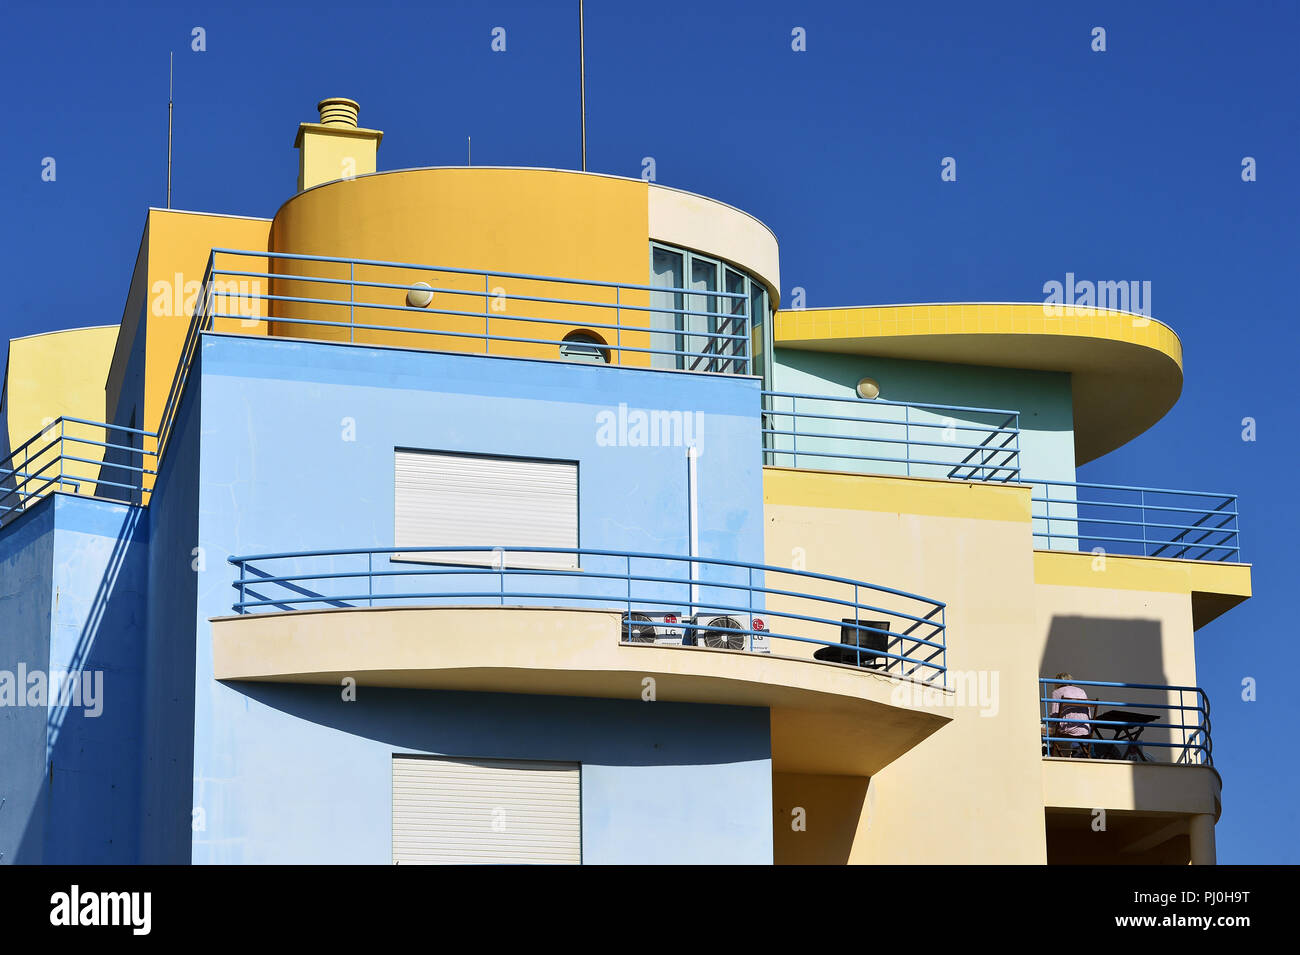 Albufeira seaside resort - Algarve - Portugal - Stock Image